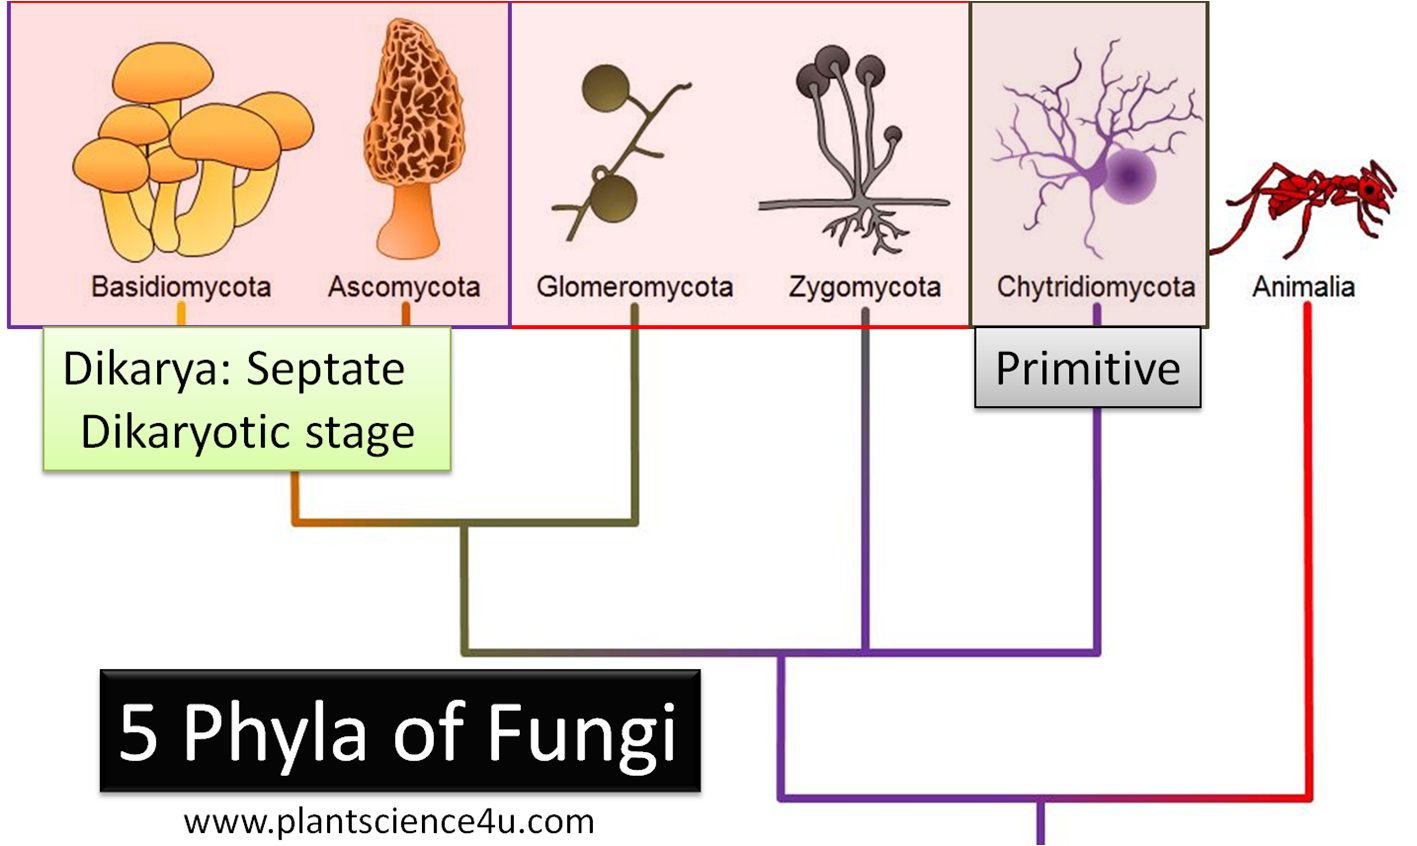 Classification of Fungi into 5 Phyla flow chart with Examples